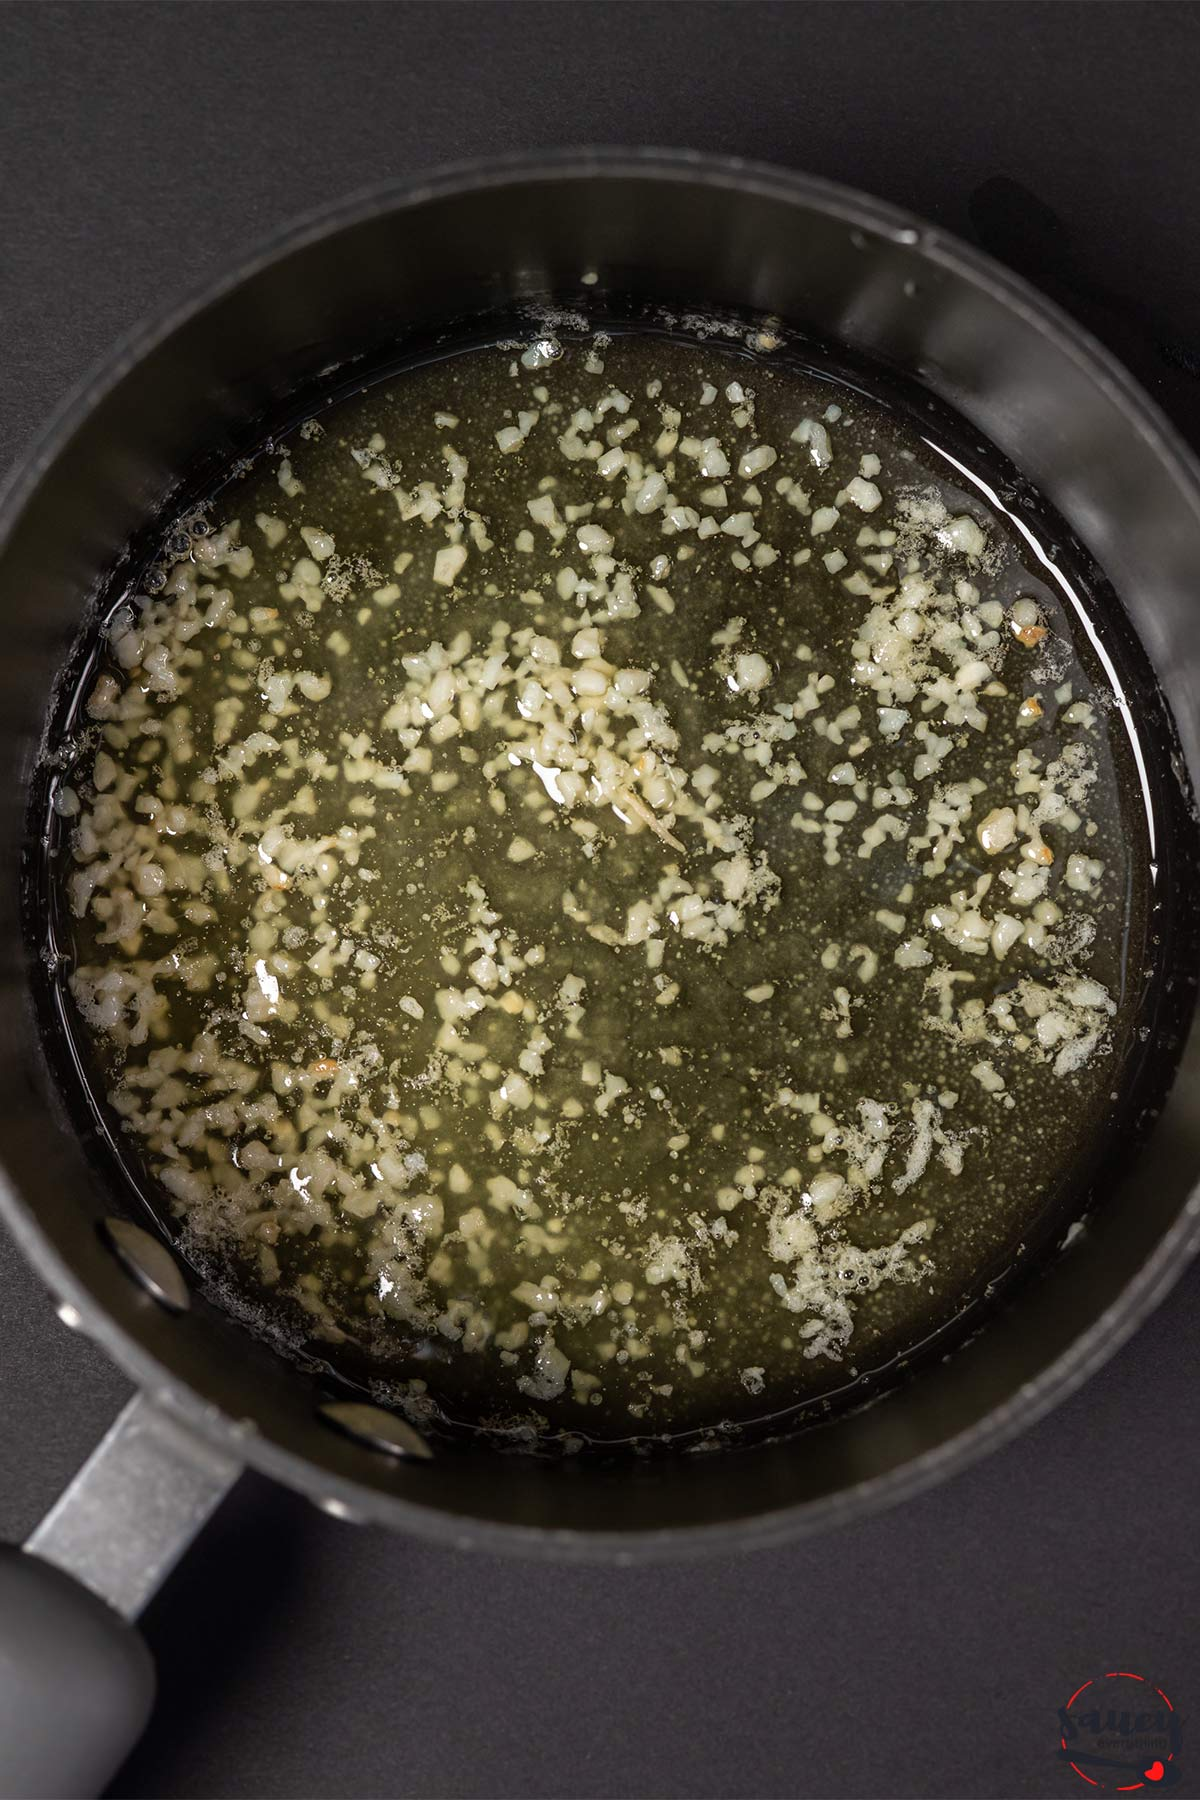 Butter and garlic in a pan